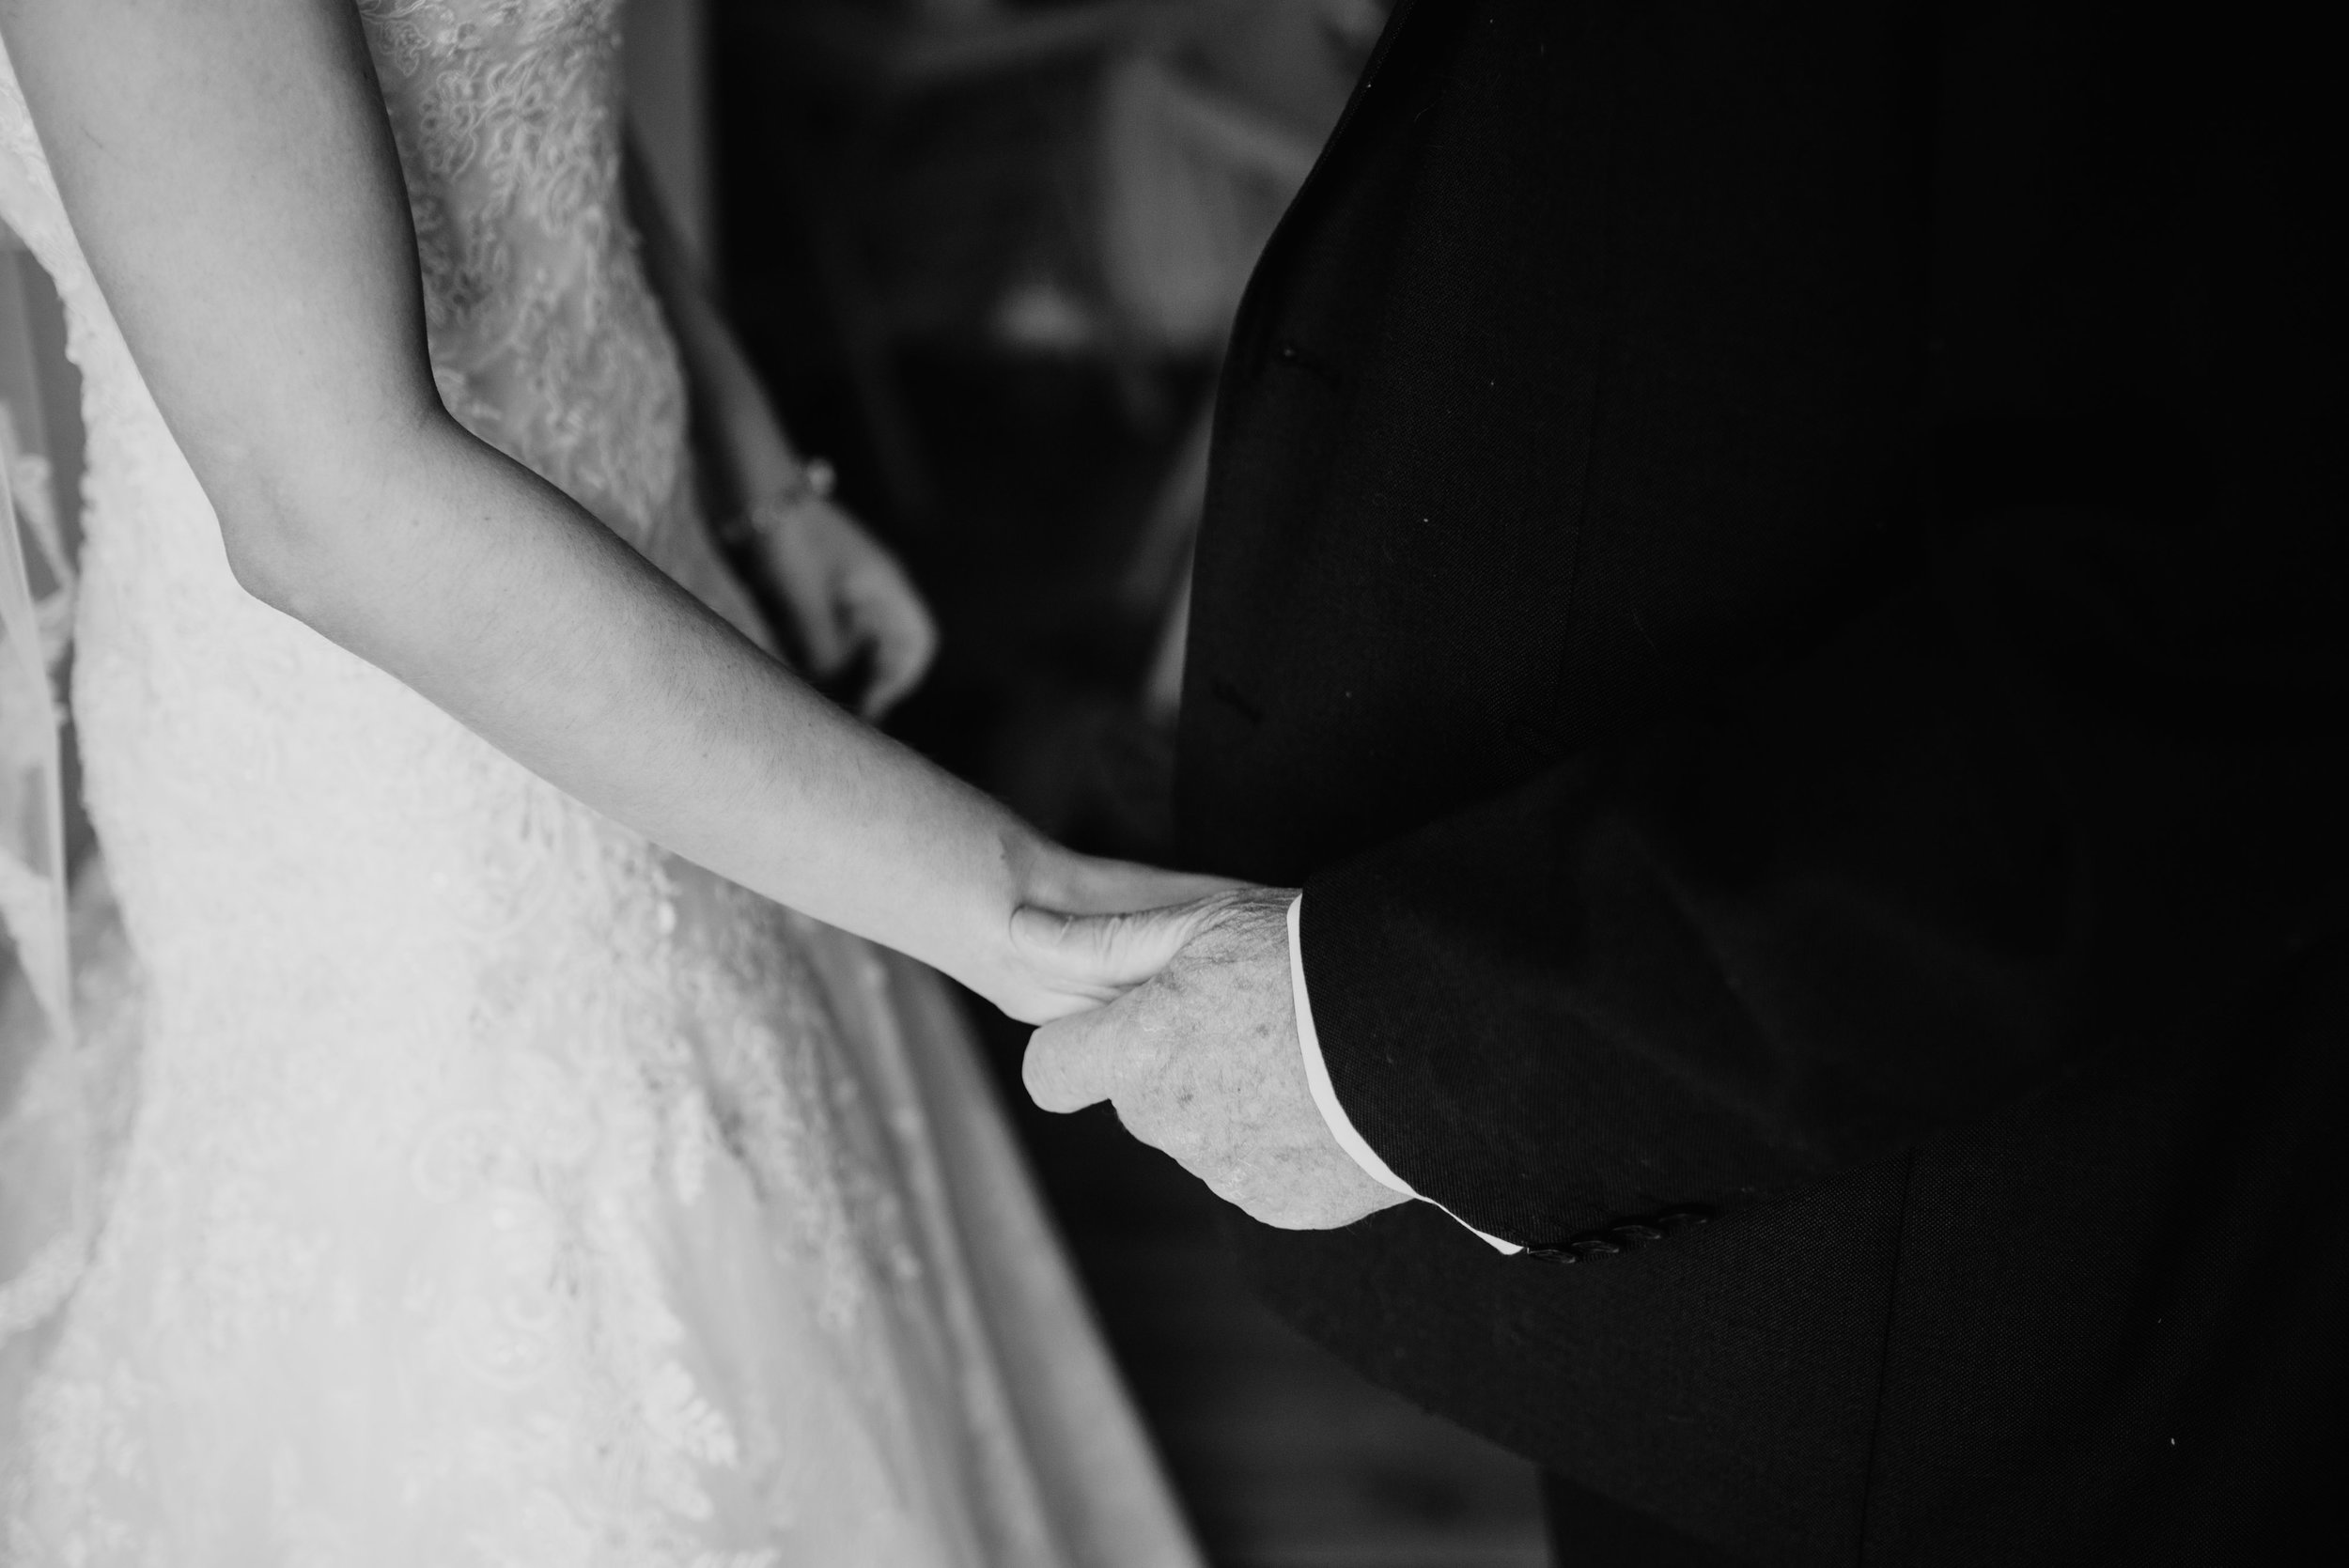 clandeboye wedding photos-21.jpg